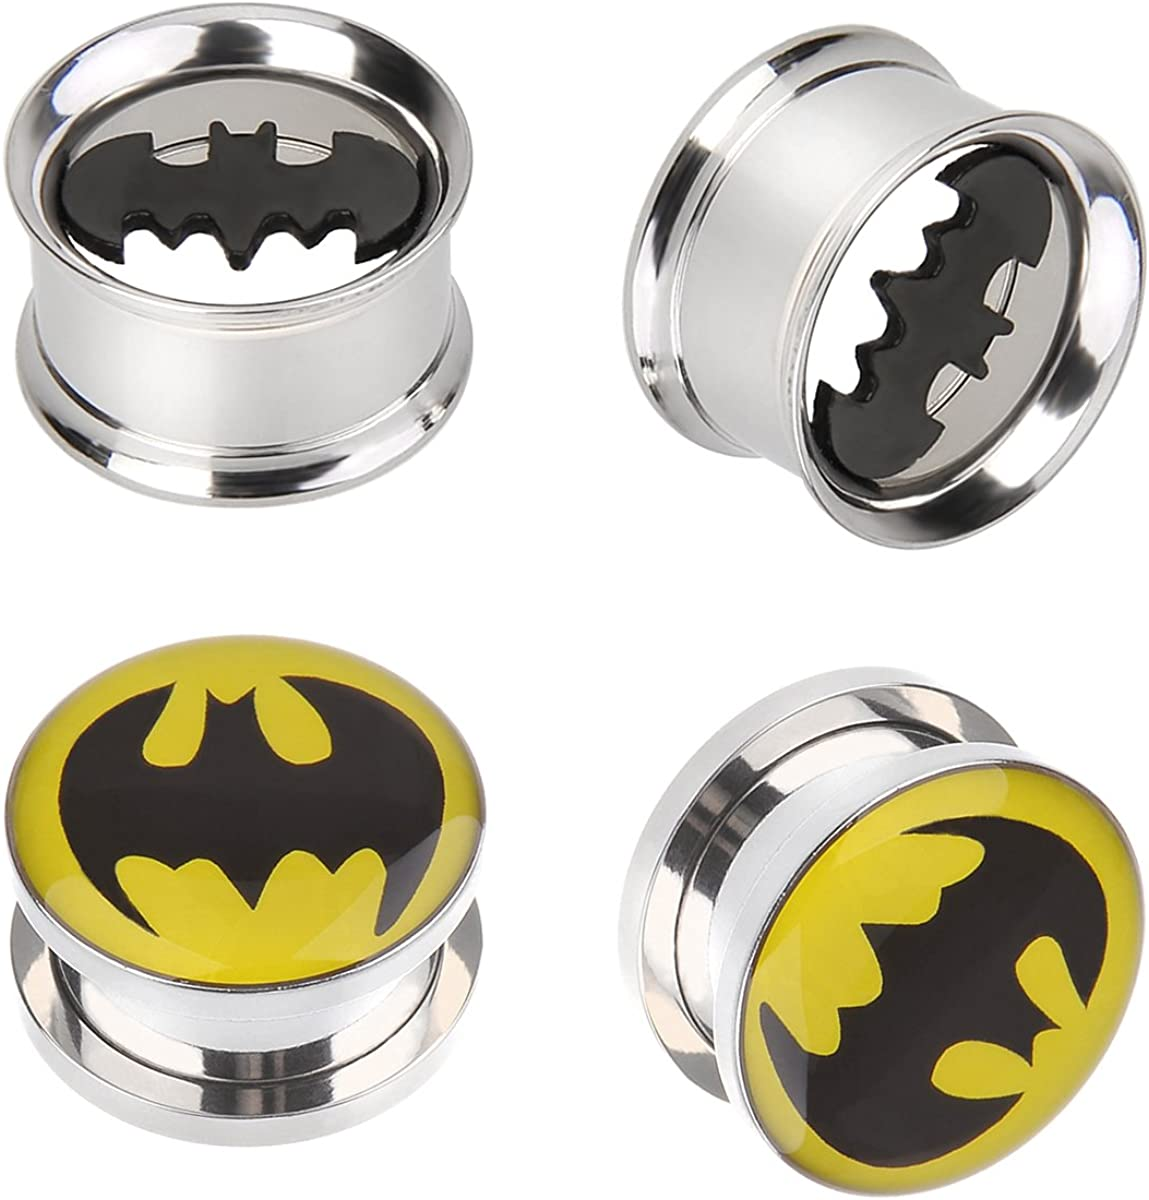 IPINK-Batman Stainless Steel Screw-On Gauges/Tunnels Double Flare Ear Plugs 2 Pairs